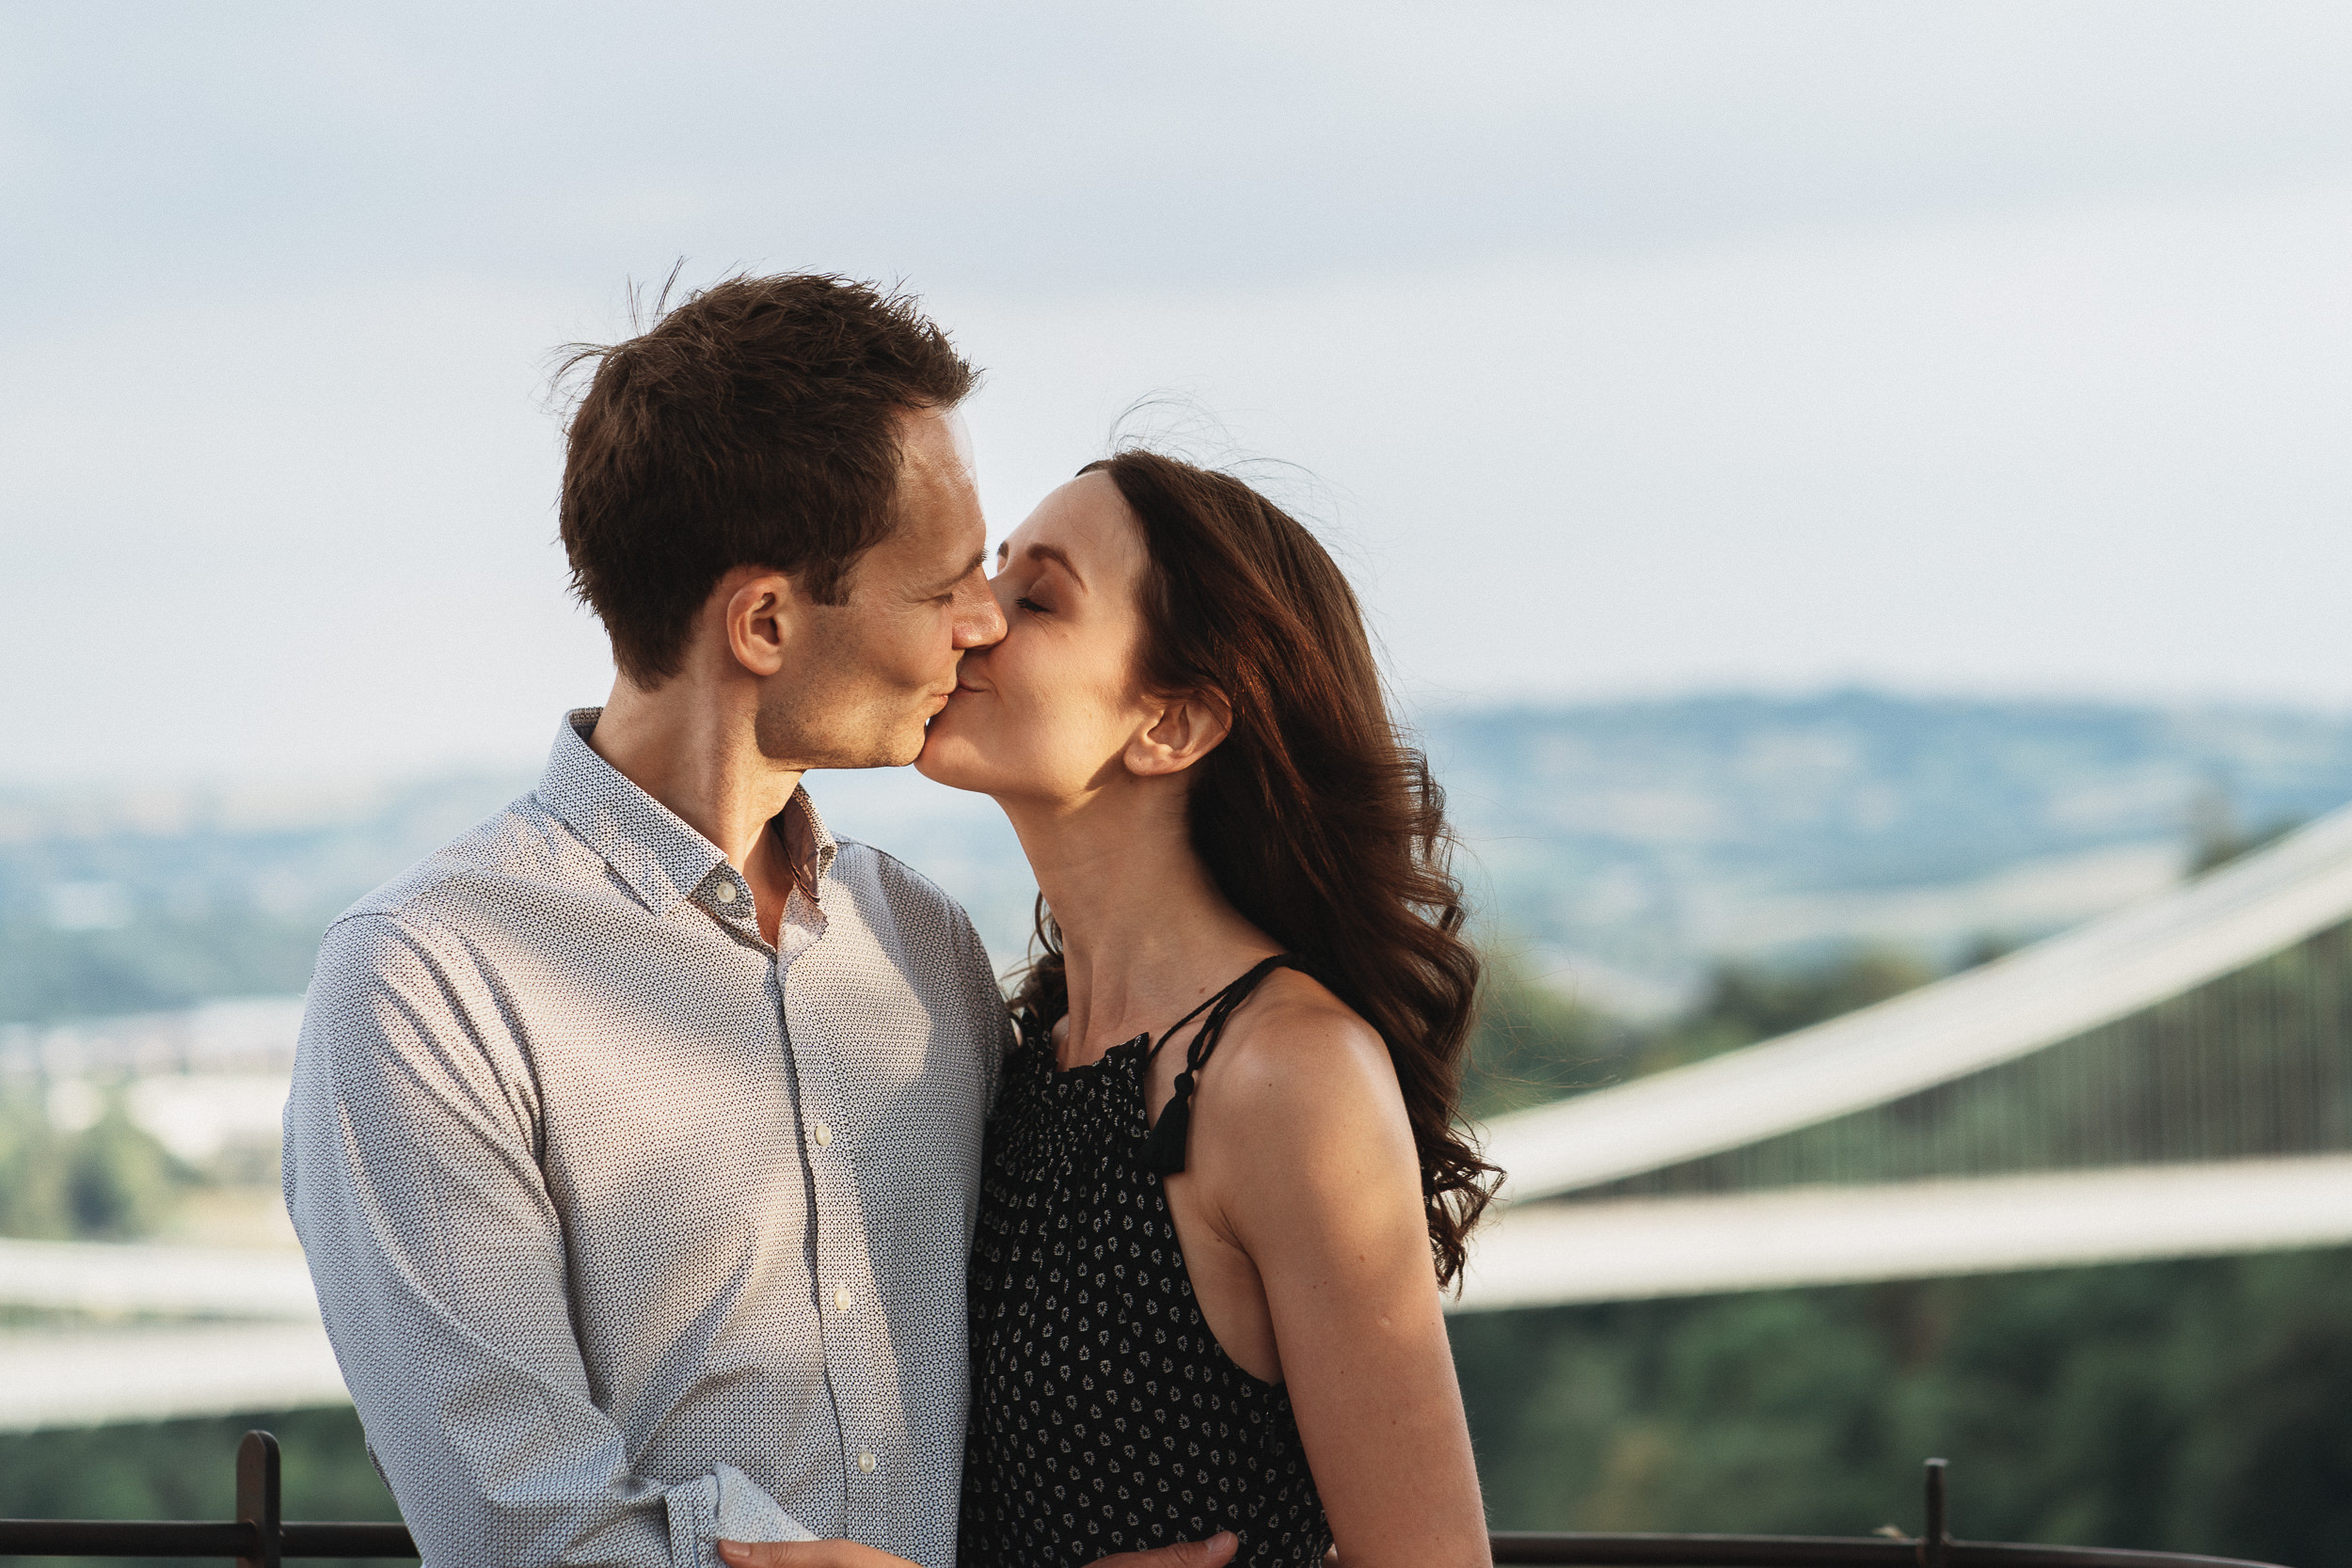 Engagement Shoot on Clifton Downs - Portrait of the couple with the Clifton Suspension Bridge in the background